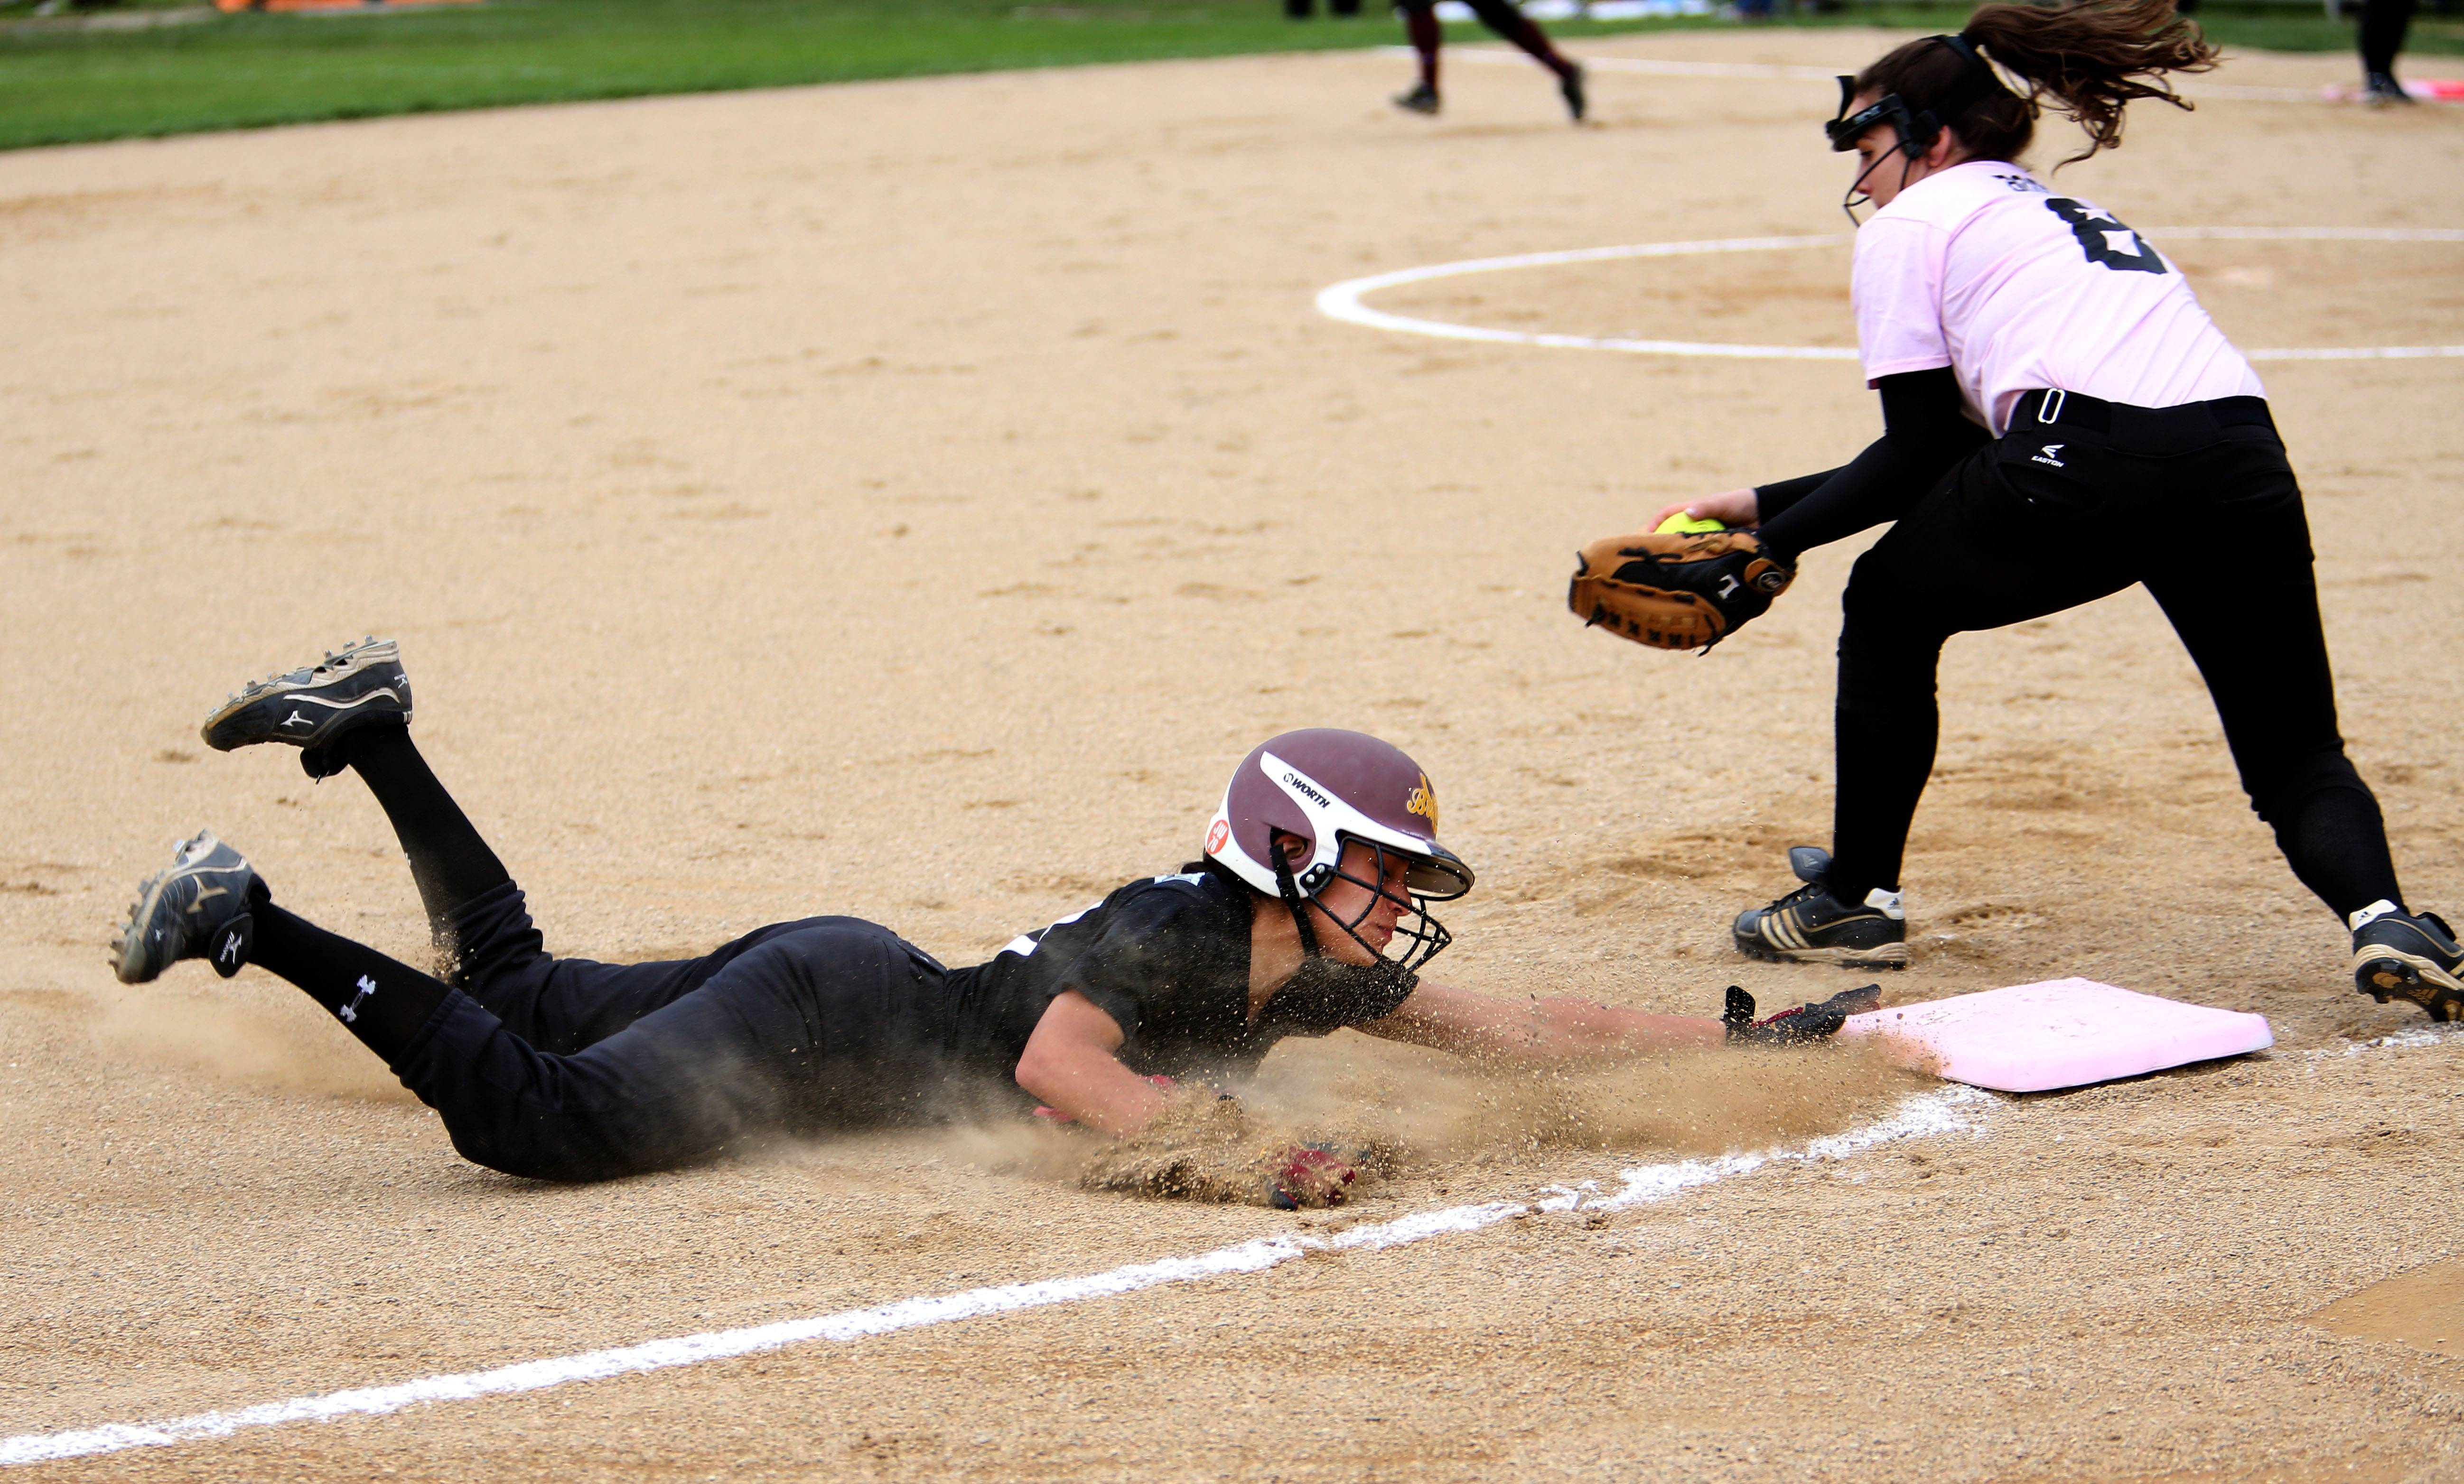 Montini's Christina Barrett steals third base in the second inning as Wheaton Academy's Gina Graff tries to make the tag during softball action in Lombard on Monday.